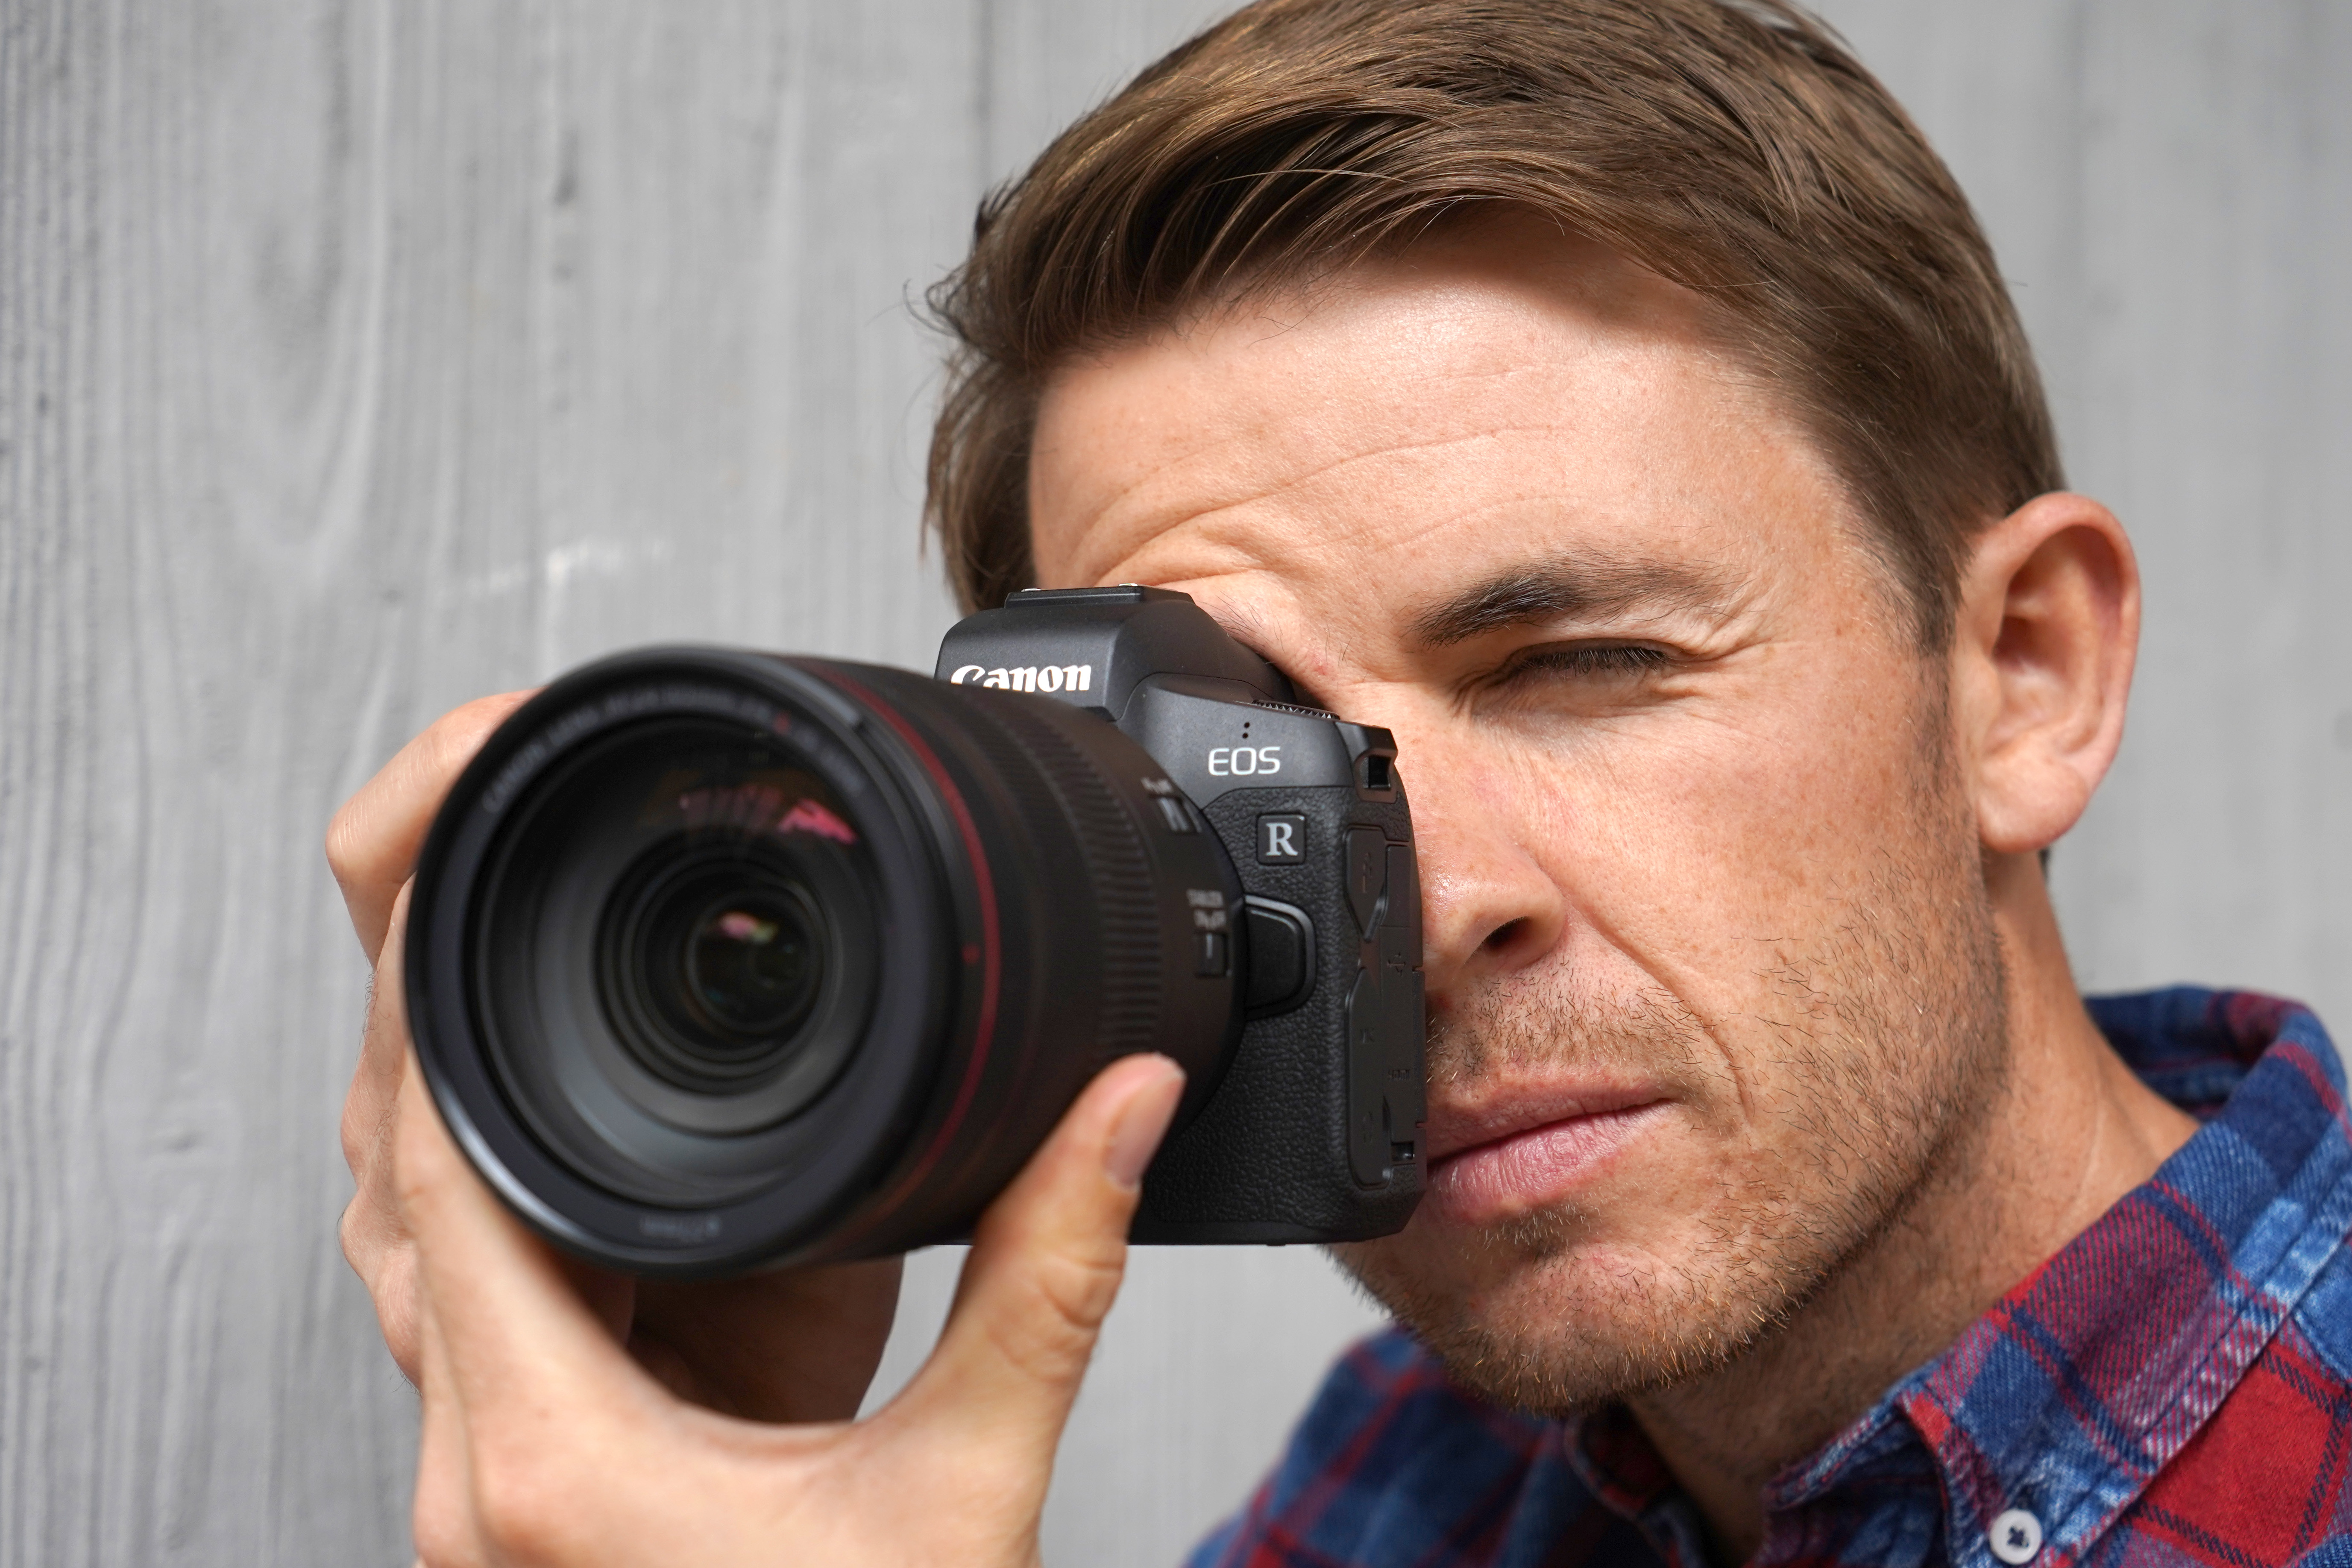 Canon Eos R Review Hands On First Look Amateur Photographer